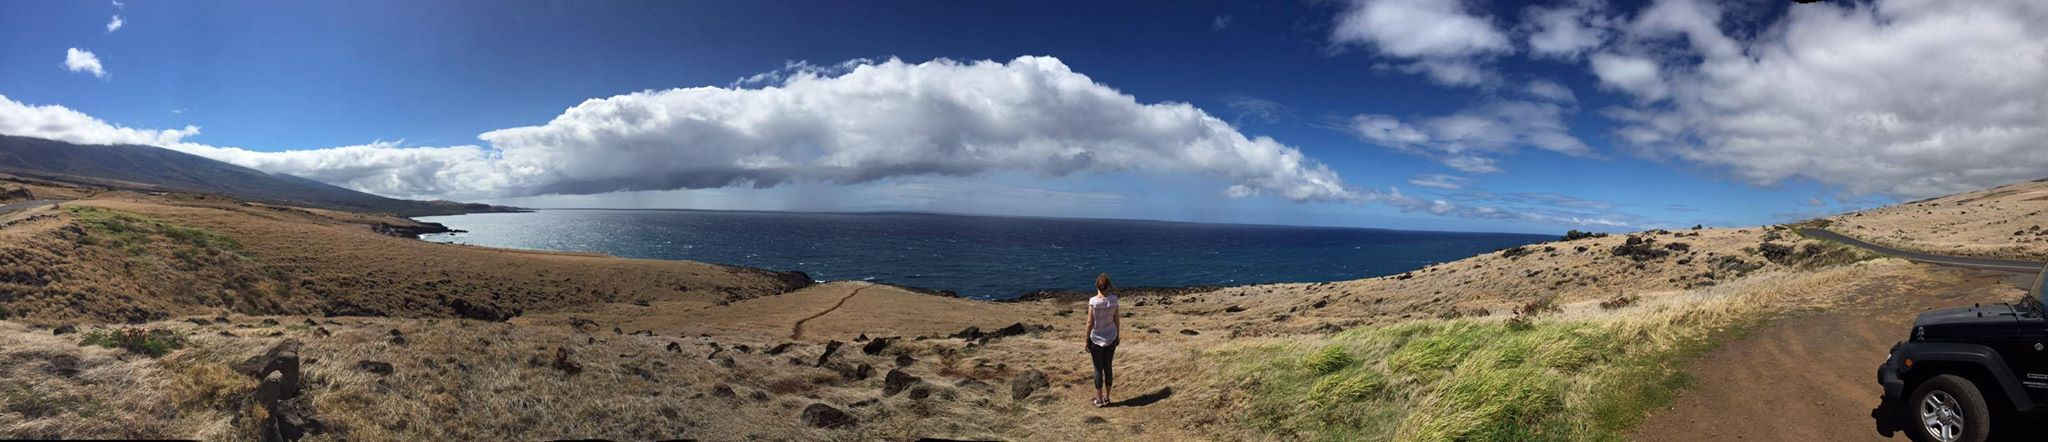 On the desert side of the island. Brown grasses and beautiful vistas. Good by Maui! See you again soon!